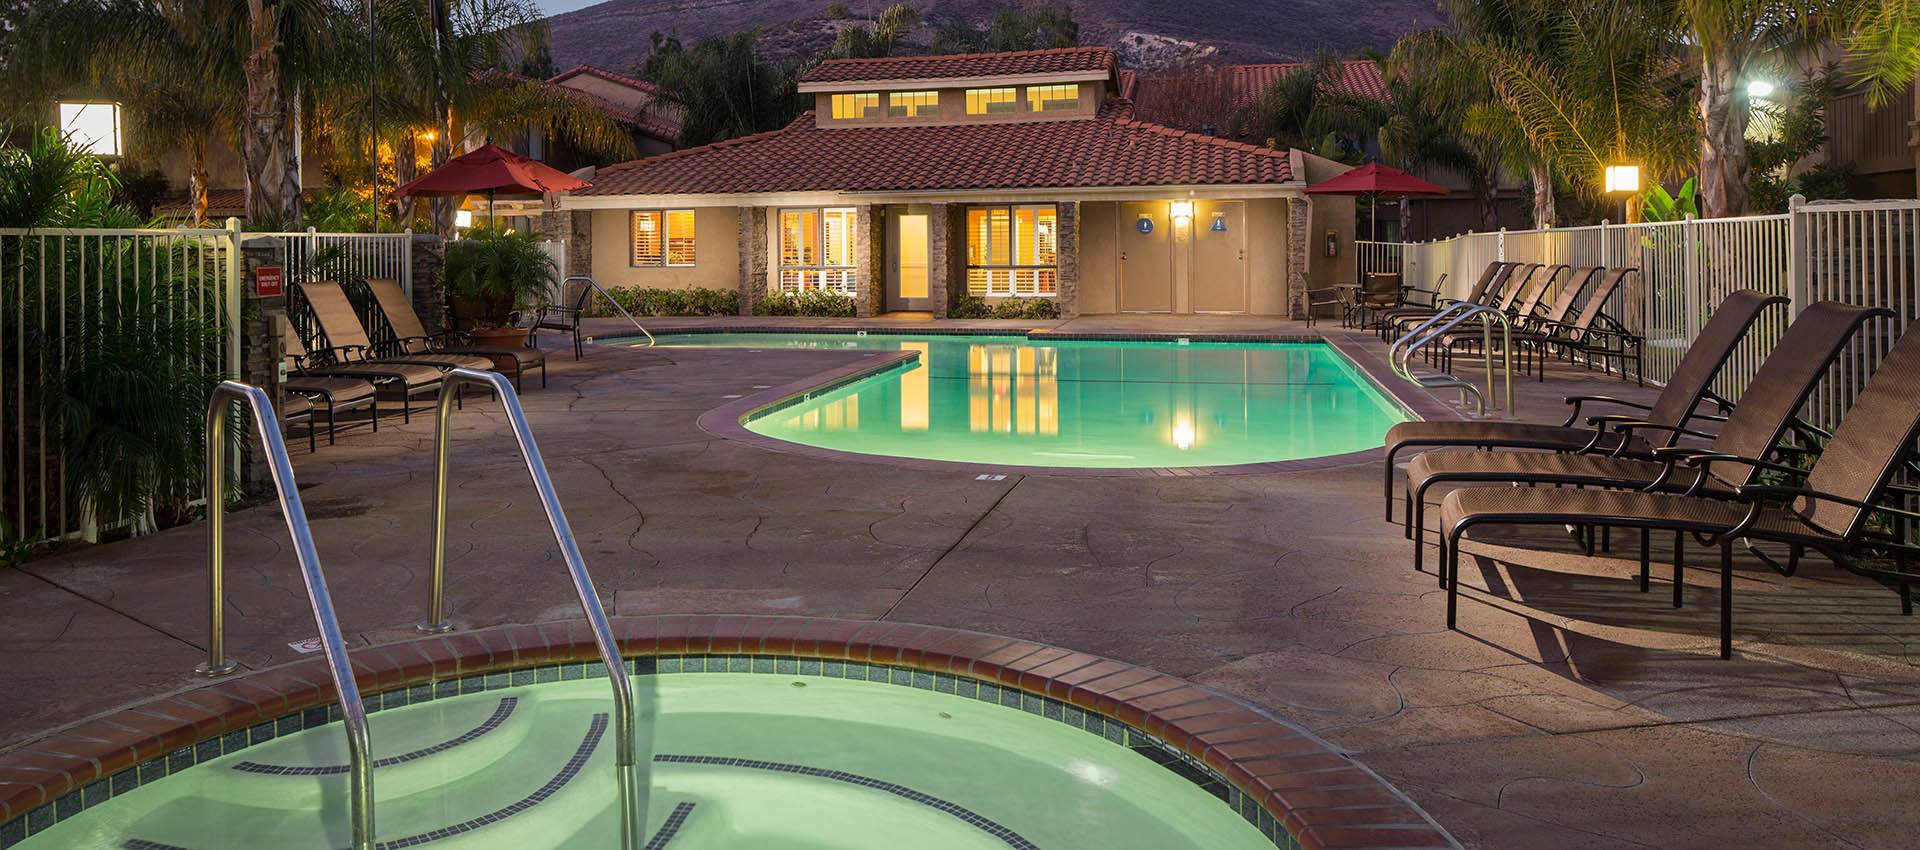 Expansive Pool Deck with Spa at The Villas & Overlook at Woodranch Apartment Homes in Simi Valley